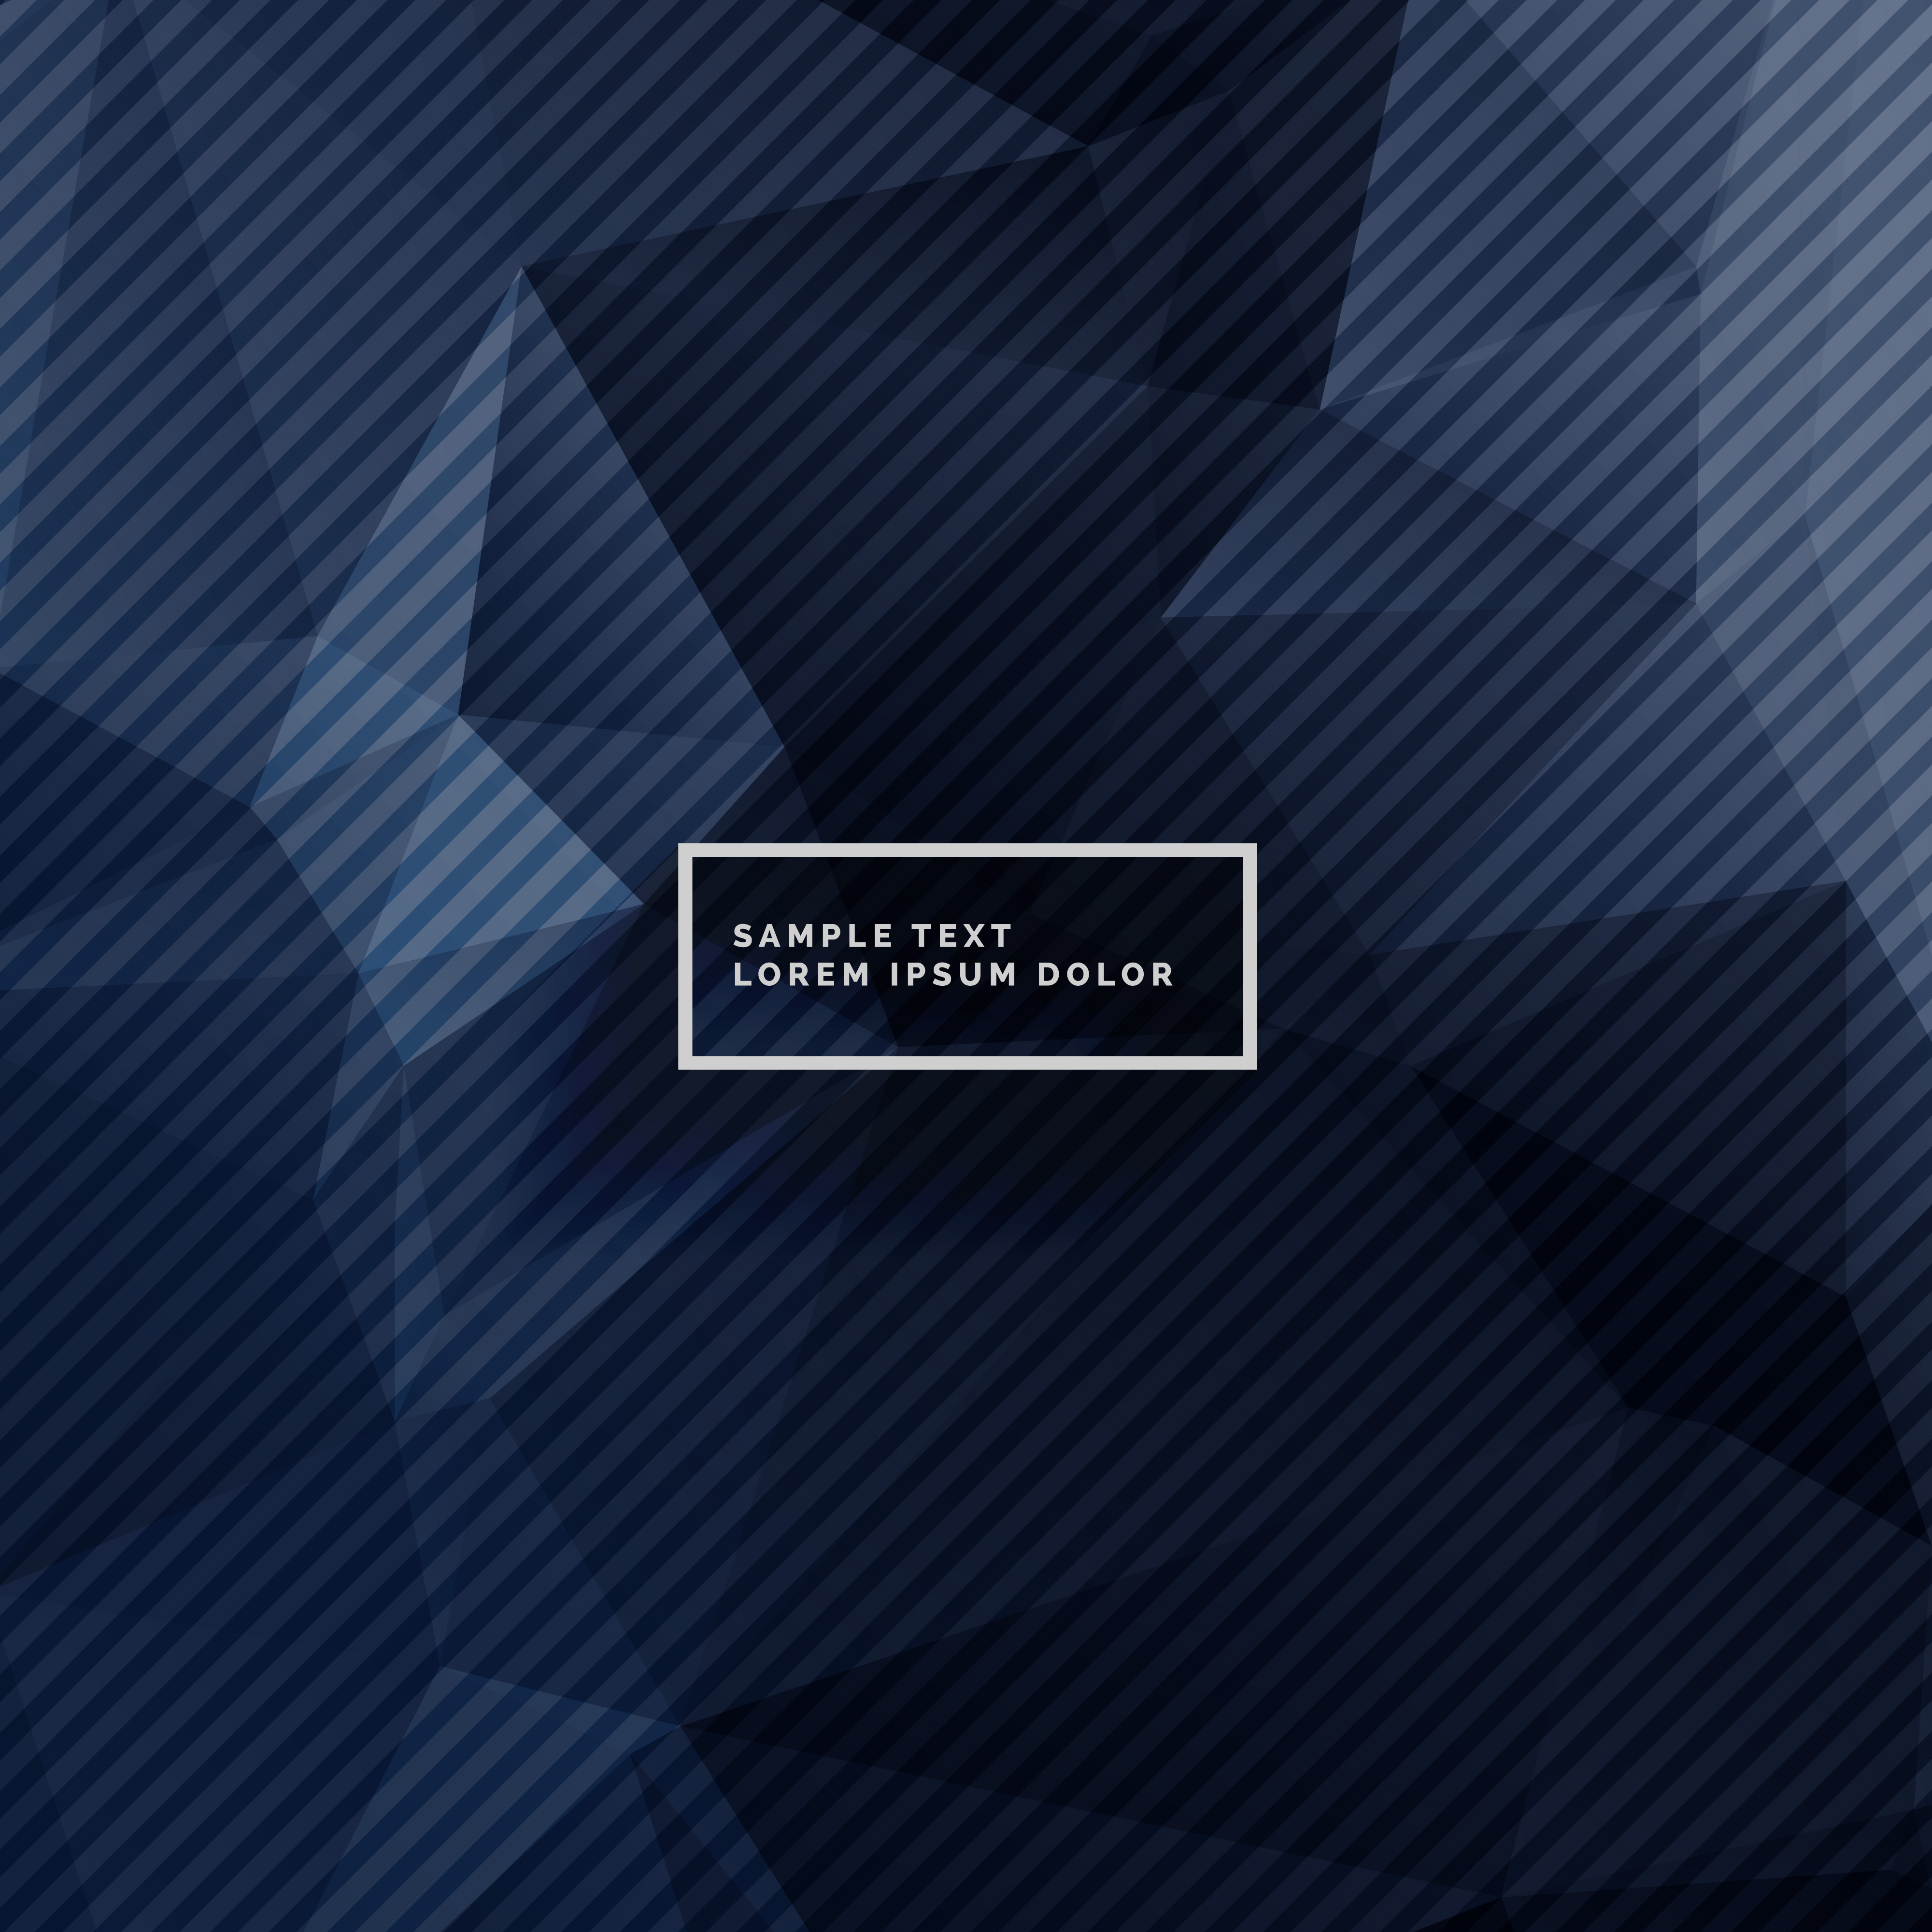 Dark Blue Background With Abstract Shapes